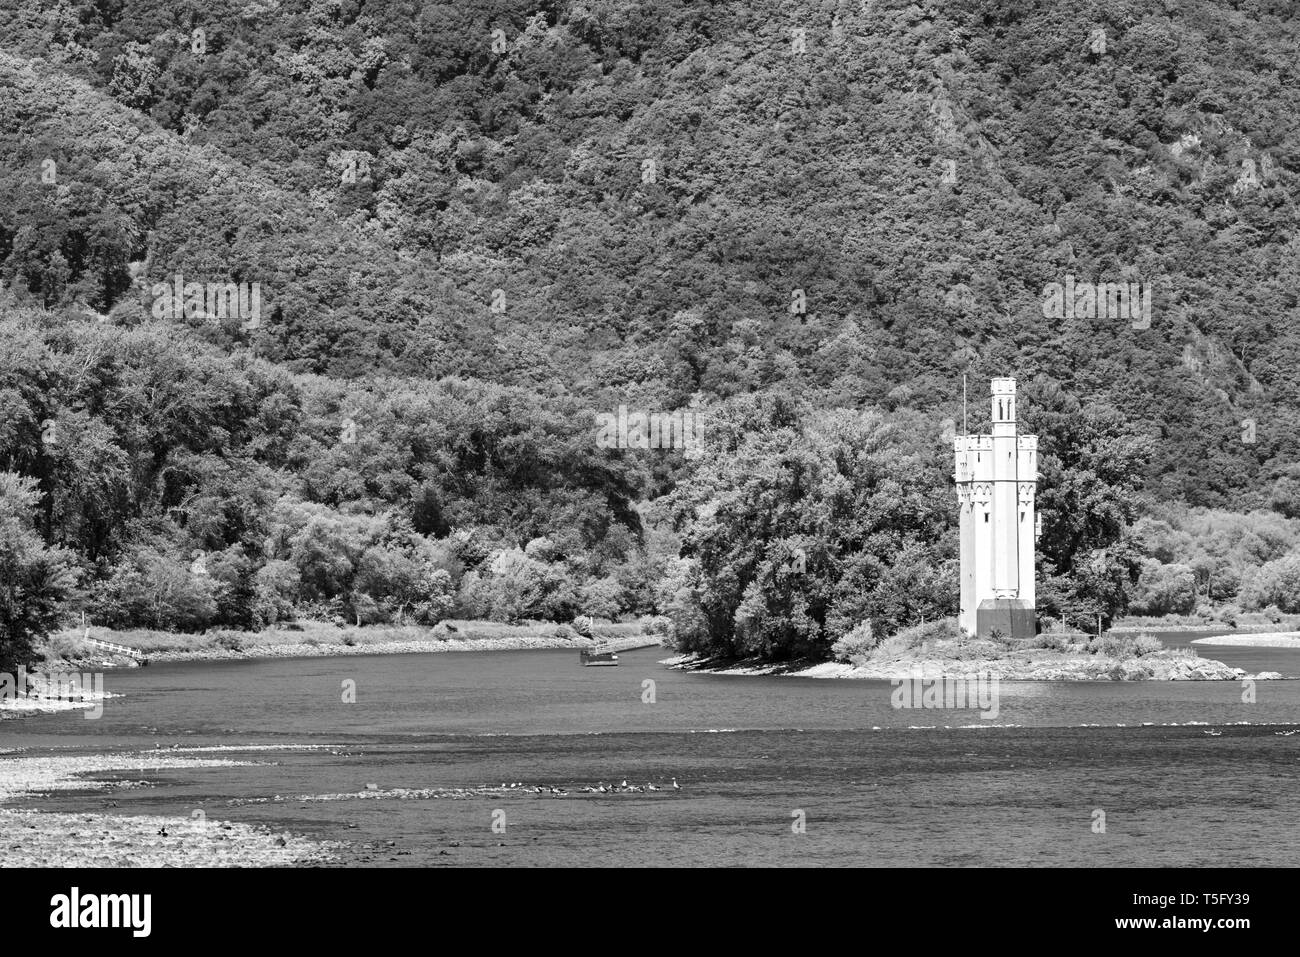 The Binger Mouse Tower, Mauseturm on a small island in the Rhine river in black and white Germany - Stock Image